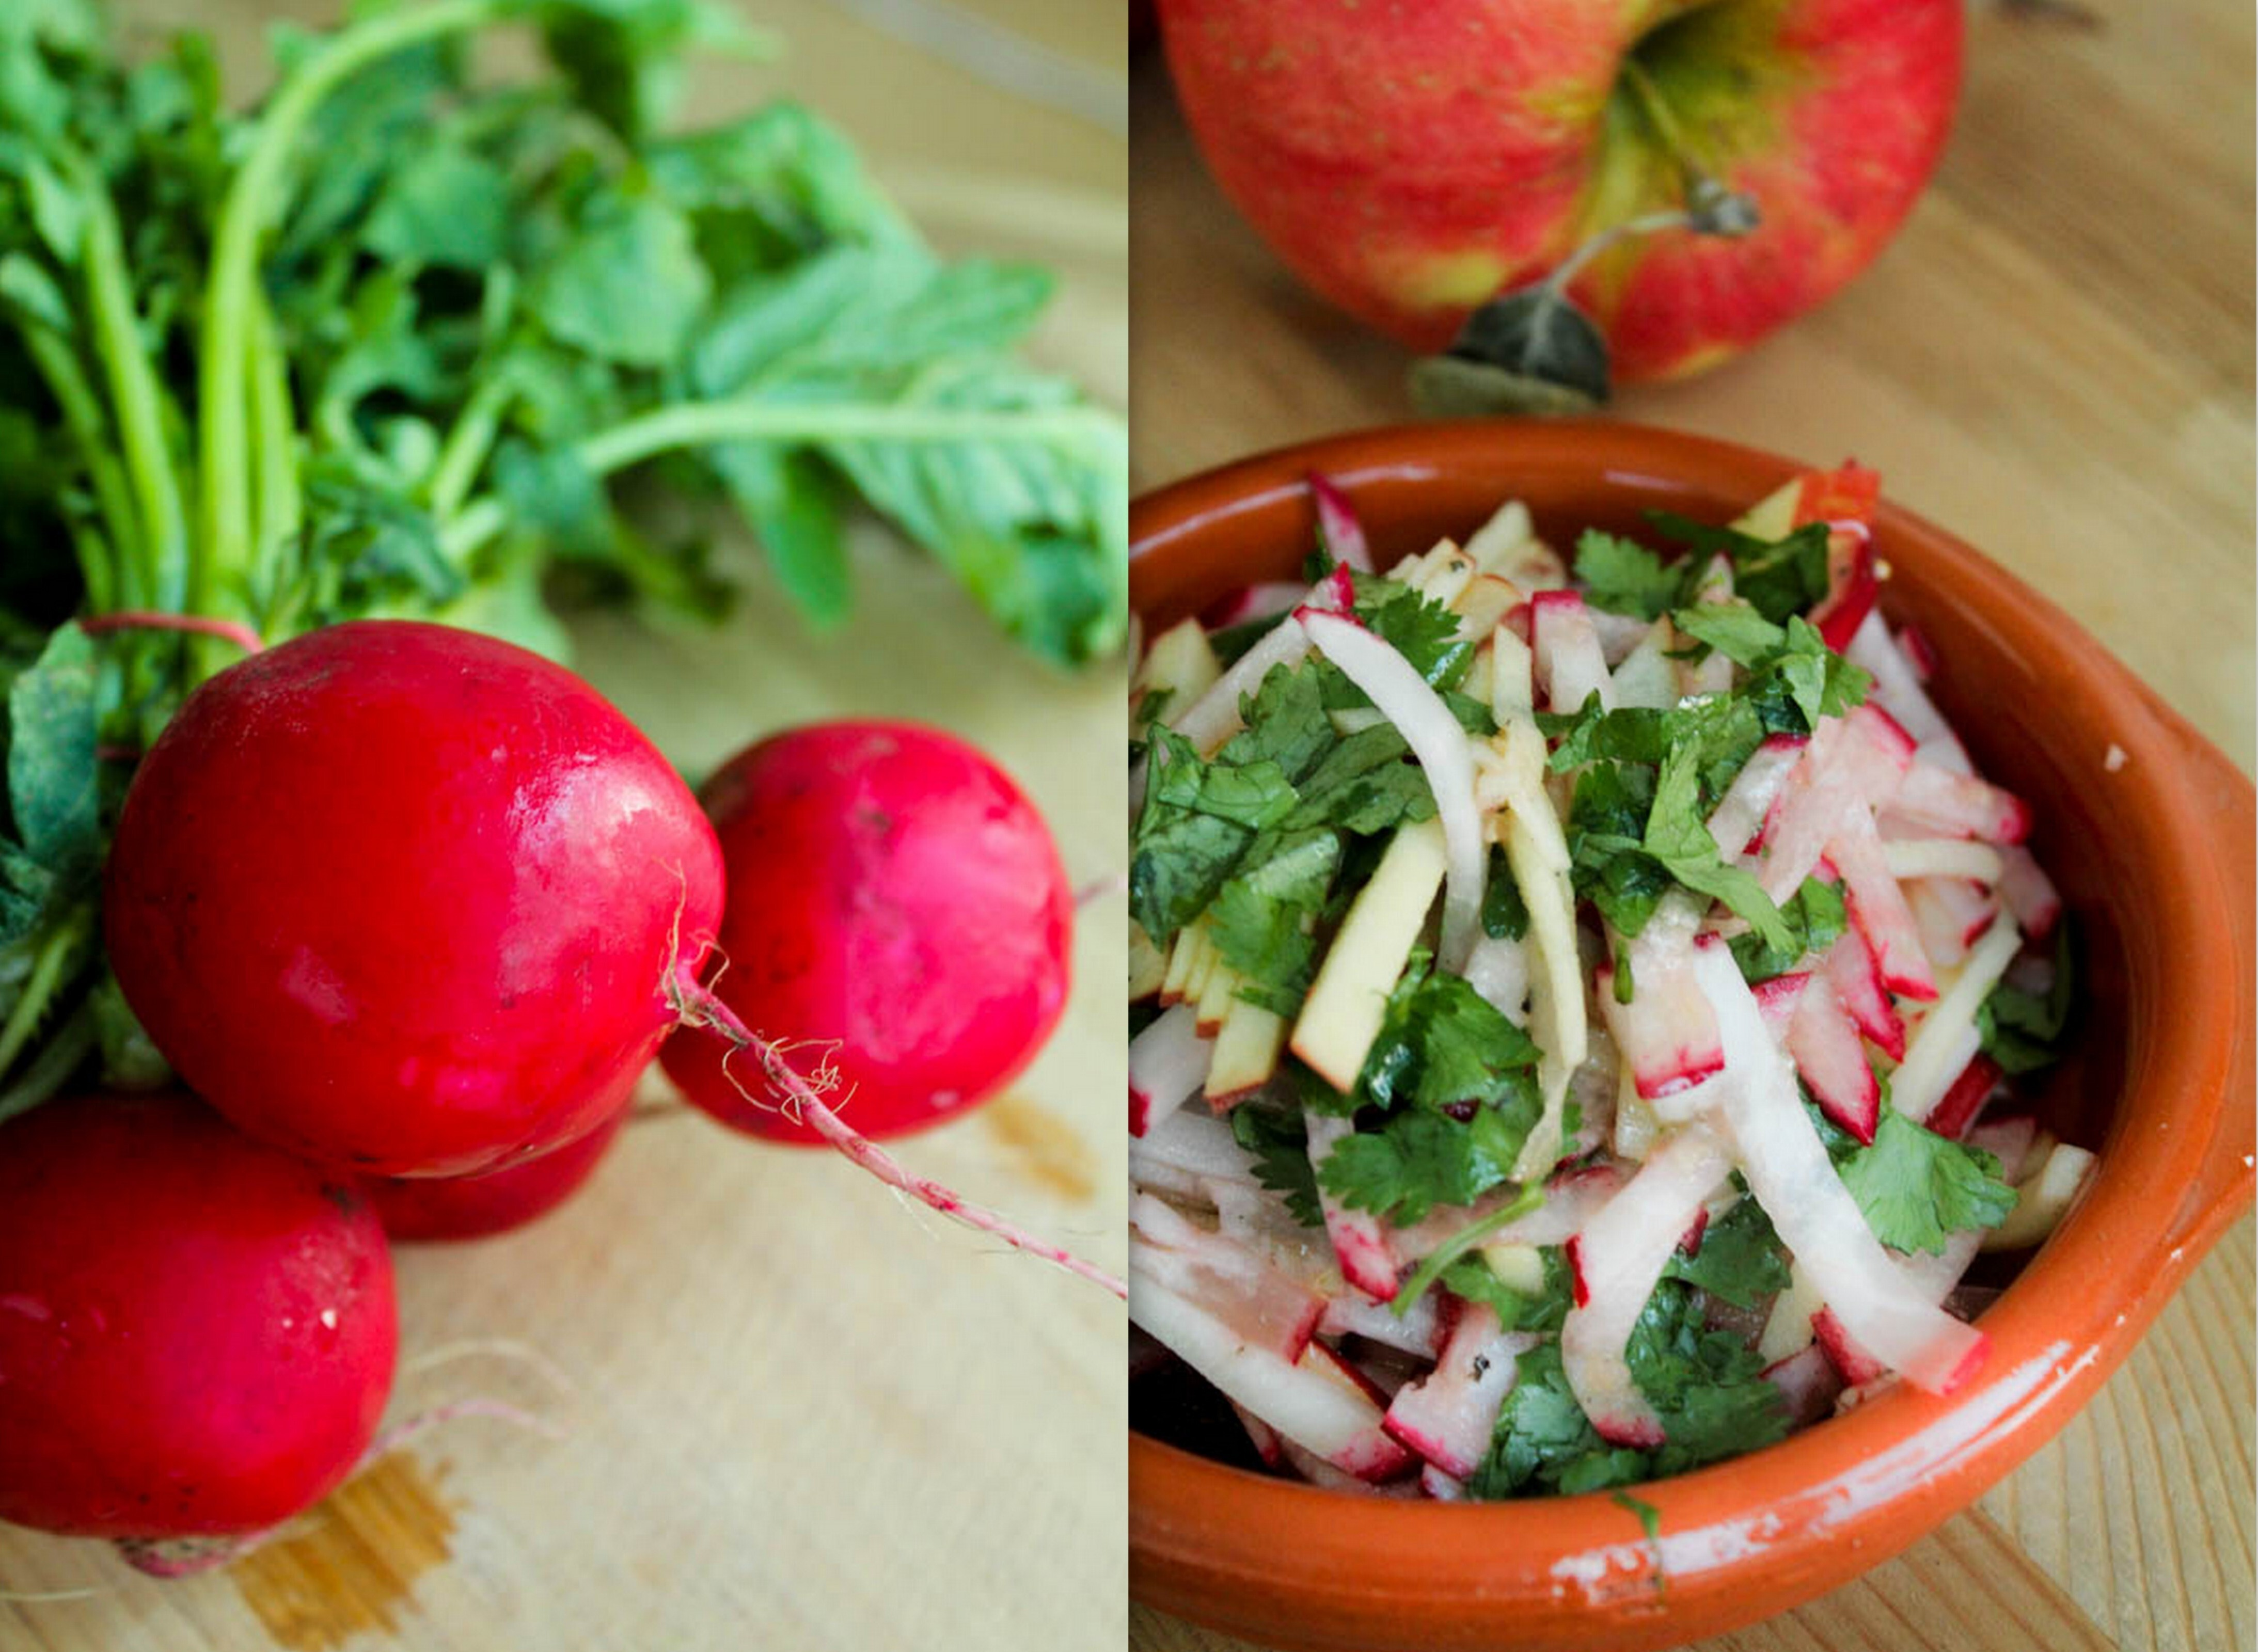 Apple Radish Salad with a Ginger Lime dressing